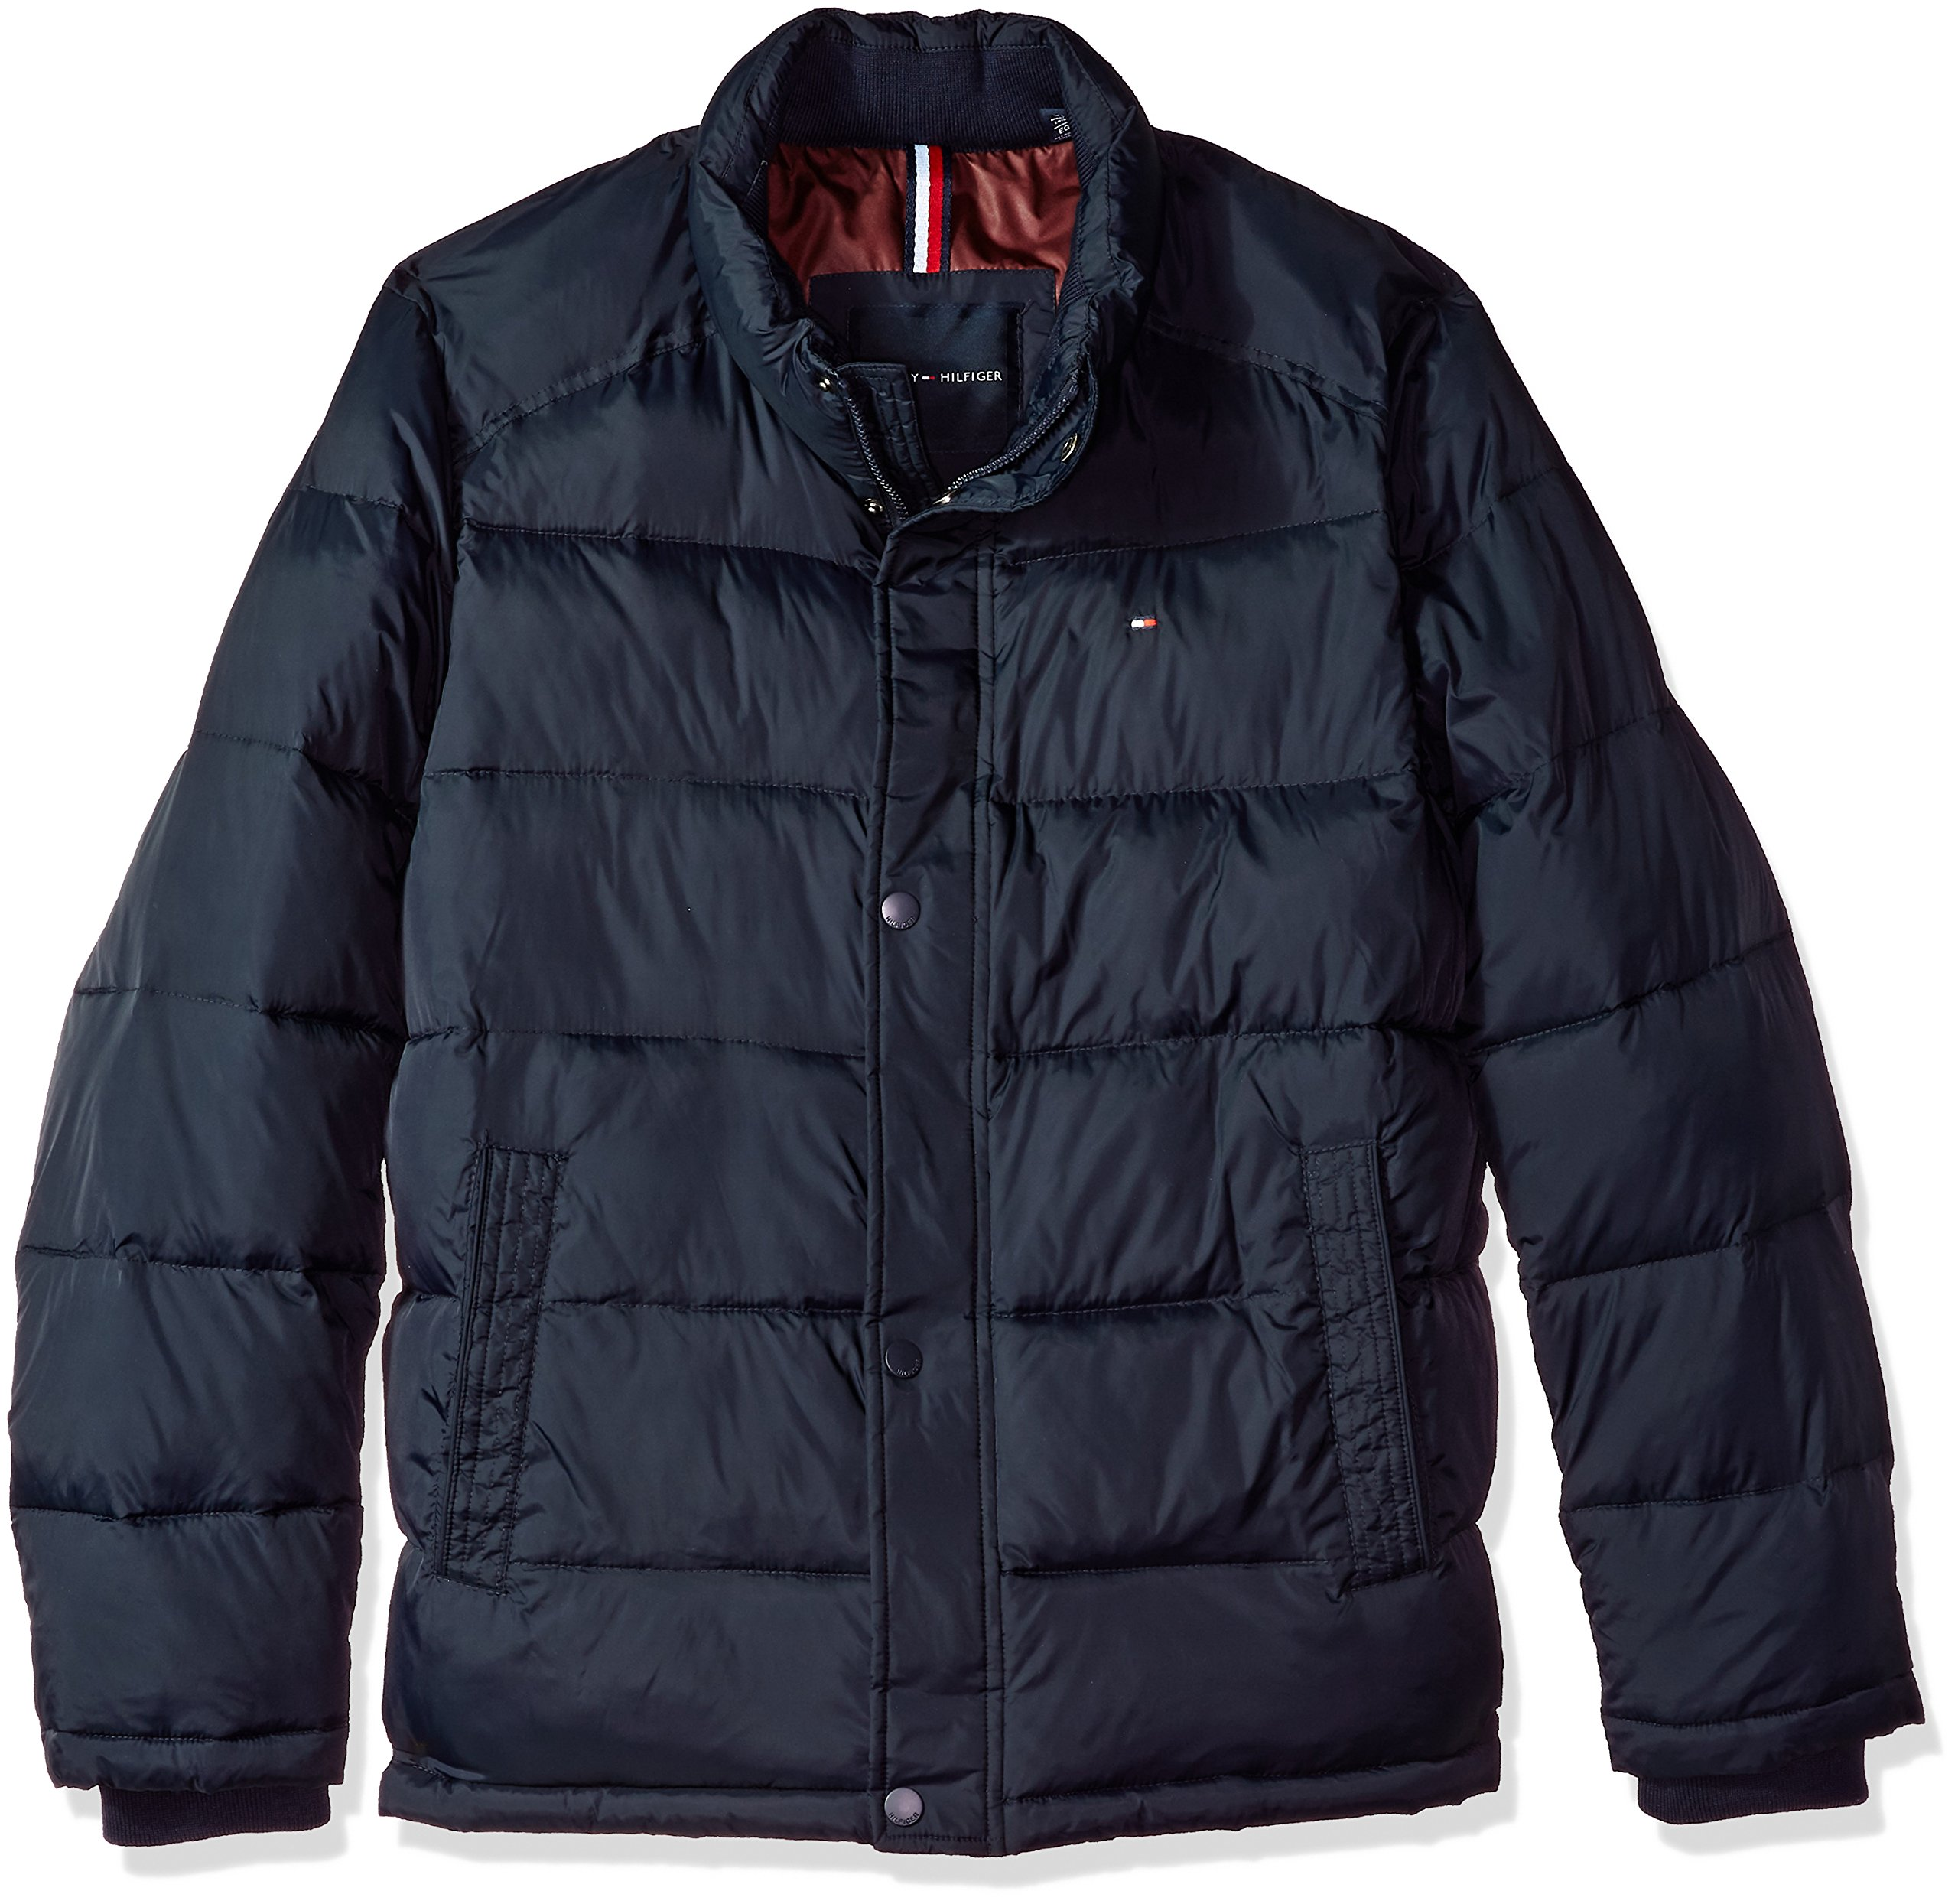 Tommy Hilfiger Men's Nylon Puffer Jacket, Midnight, 2XL by Tommy Hilfiger